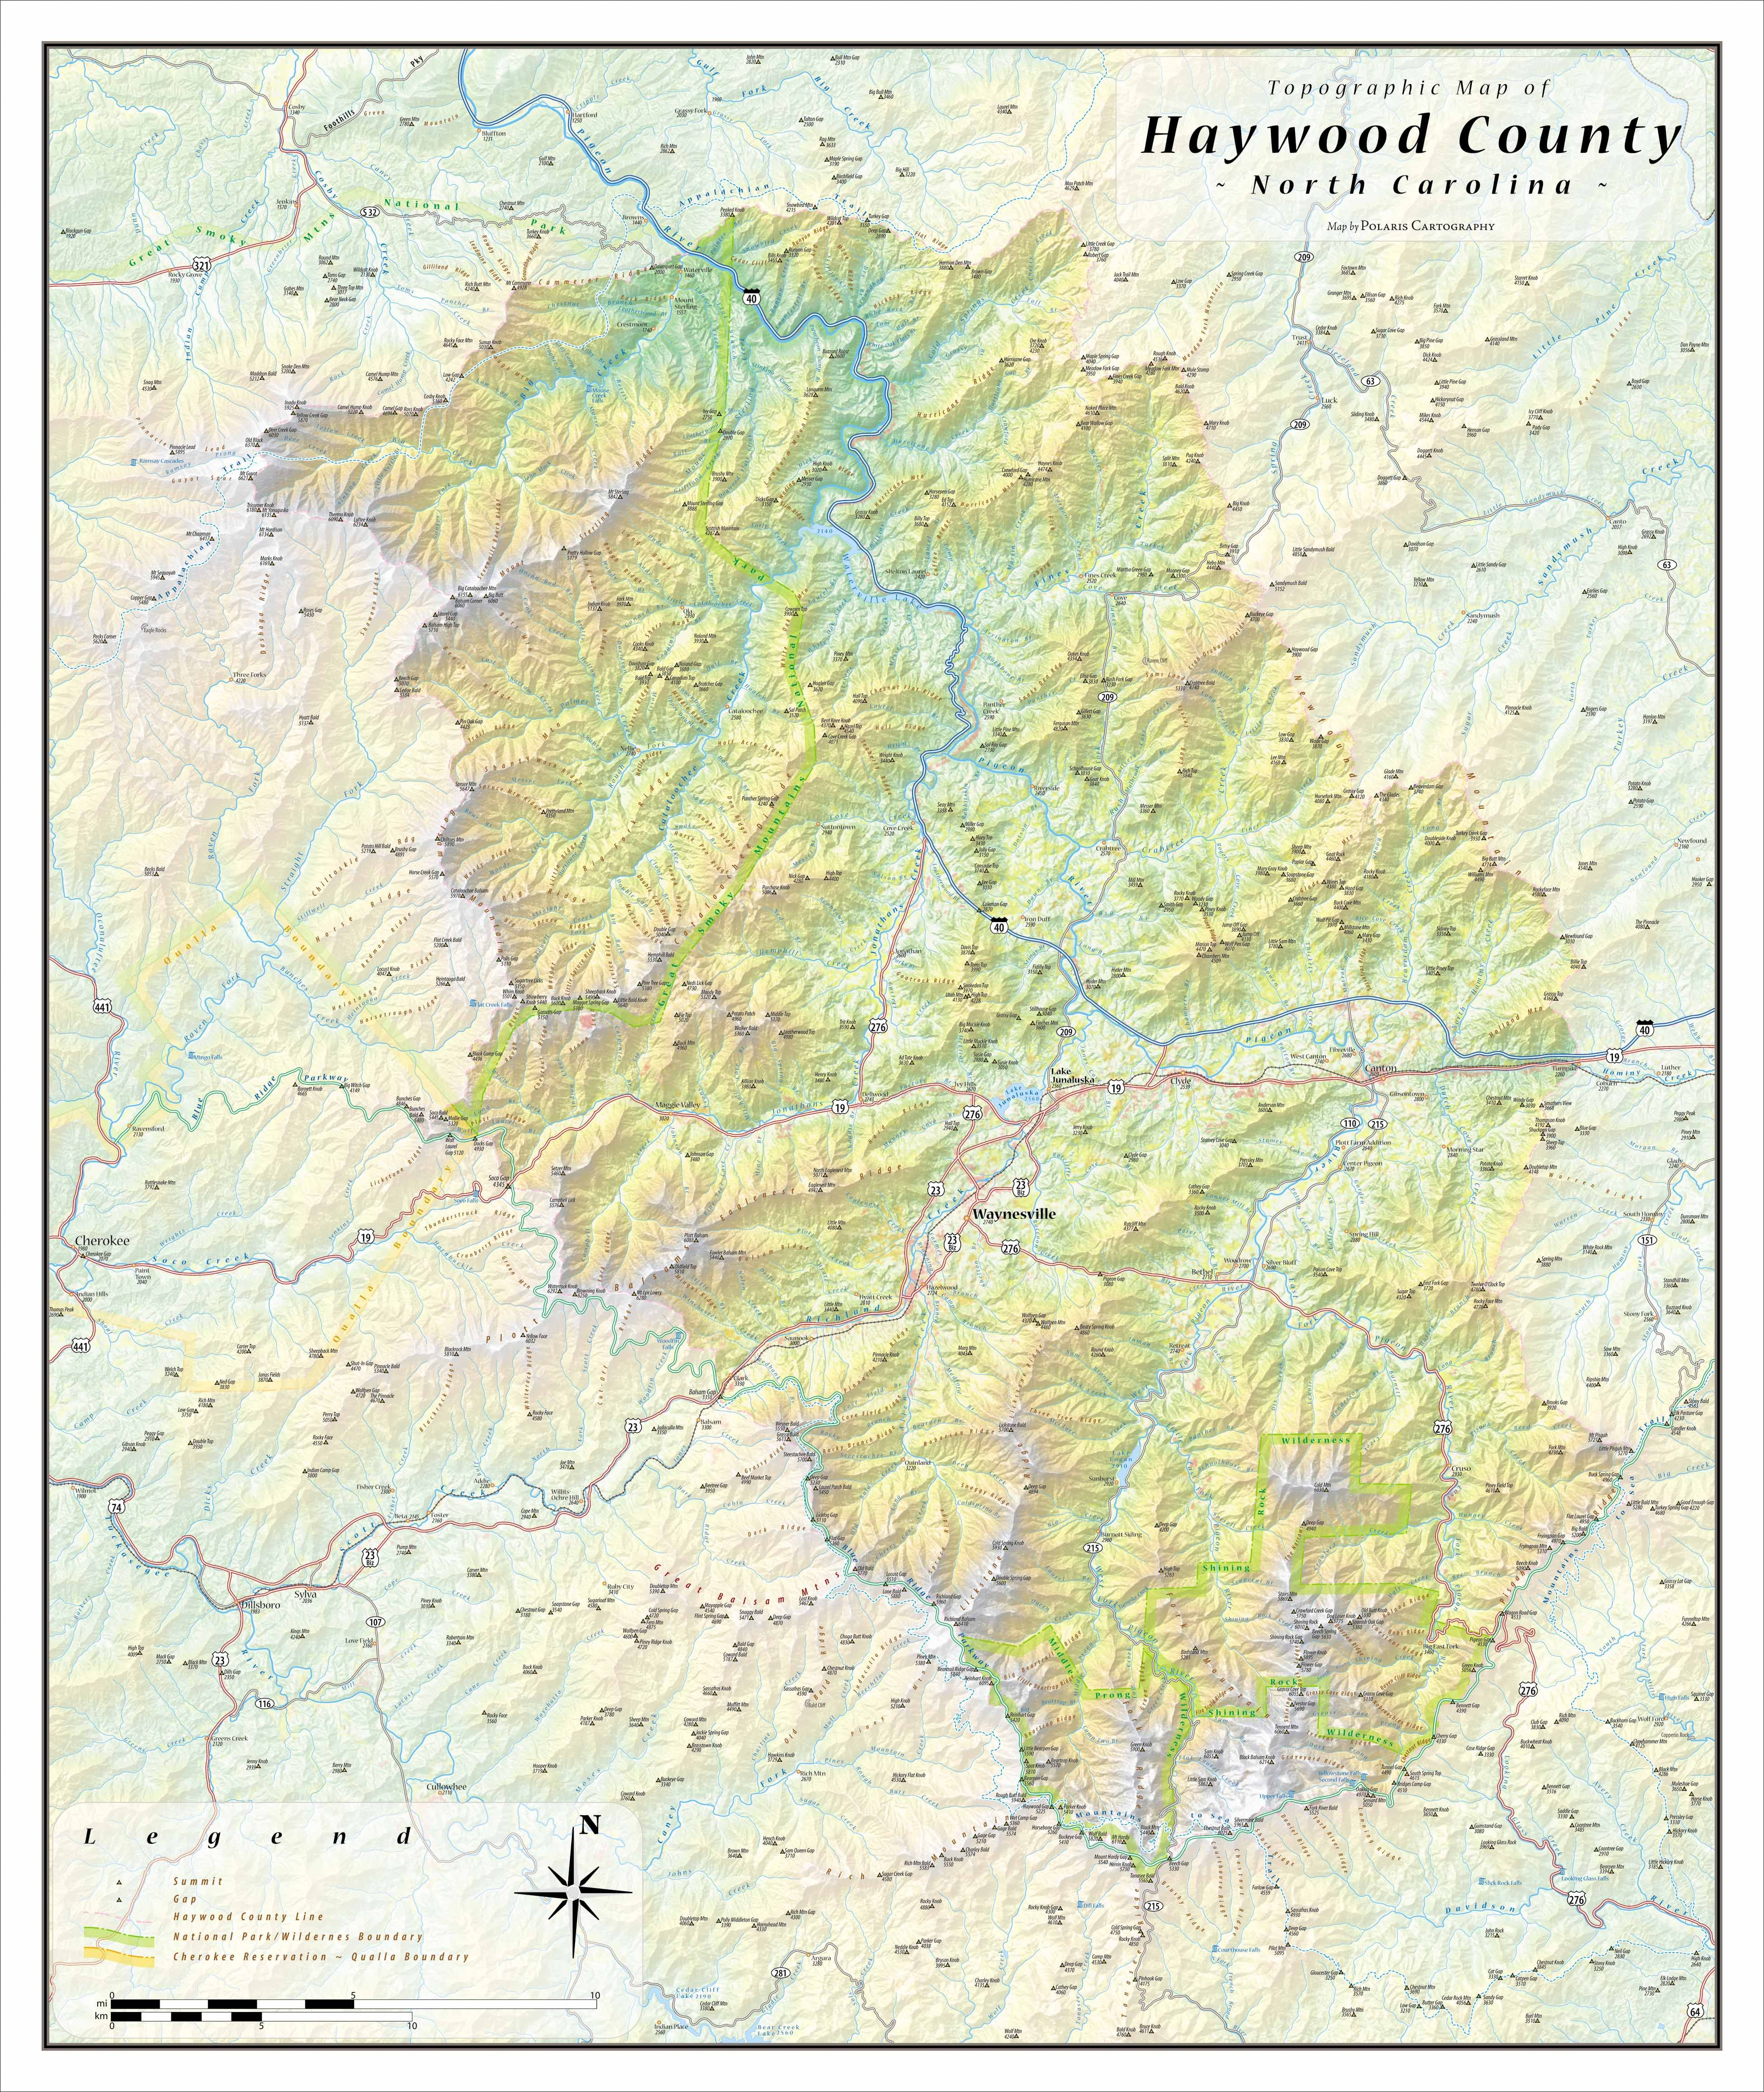 Haywood County Topographical Map haywood north carolina • mappery